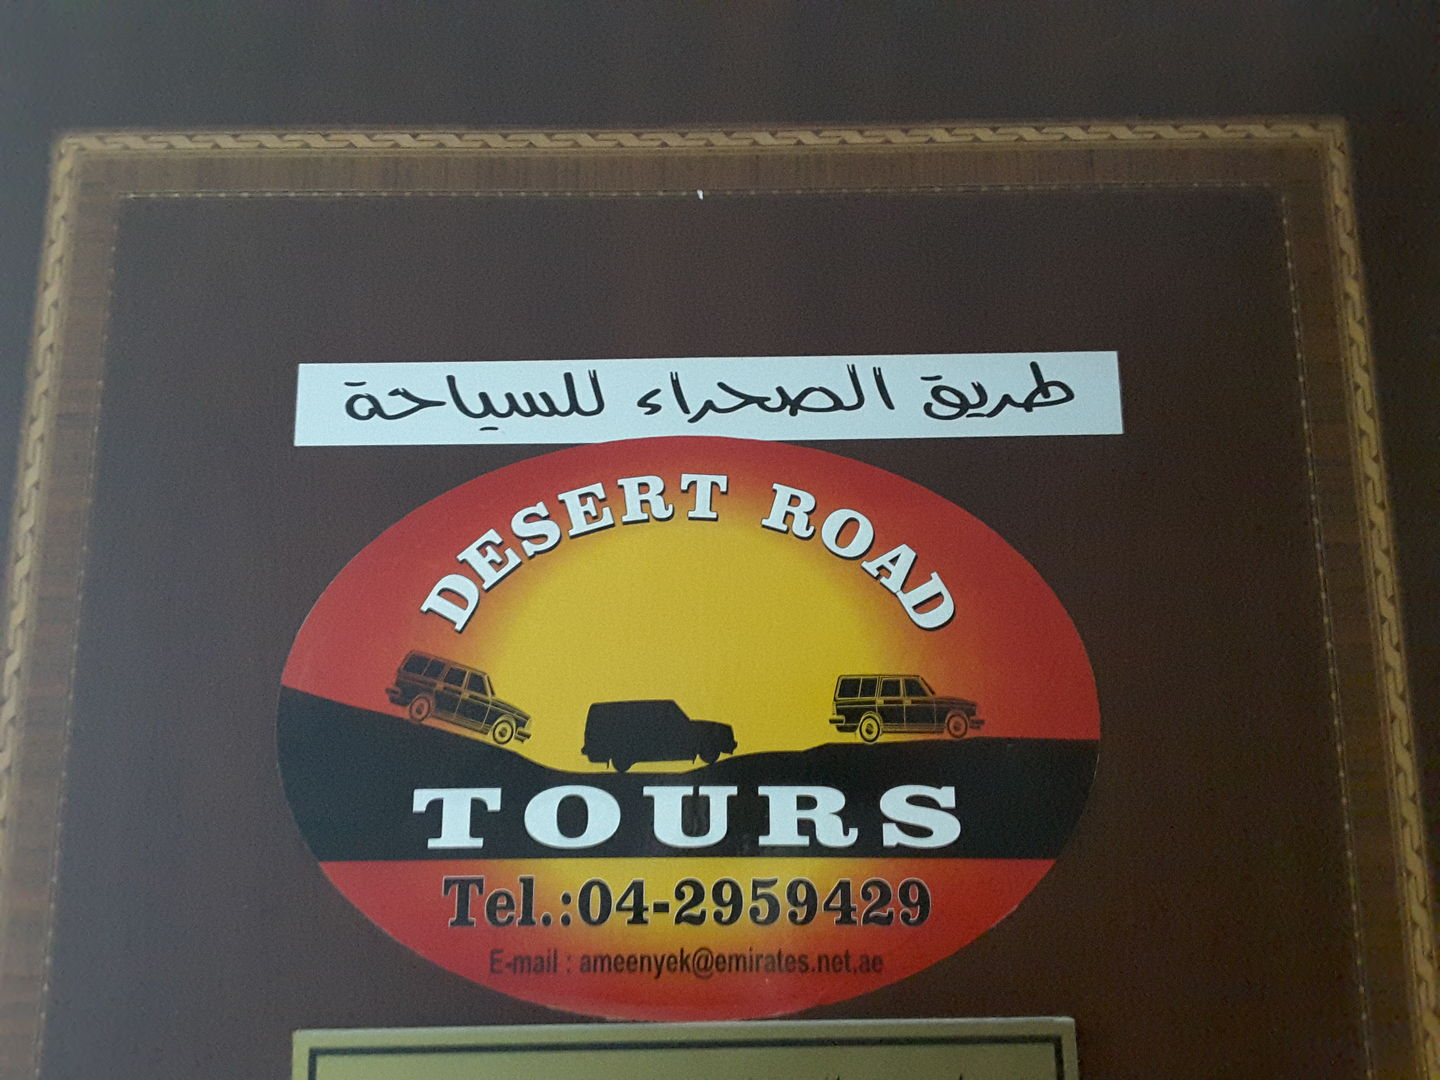 HiDubai-business-desert-road-tourism-hotels-tourism-travel-ticketing-agencies-port-saeed-dubai-2